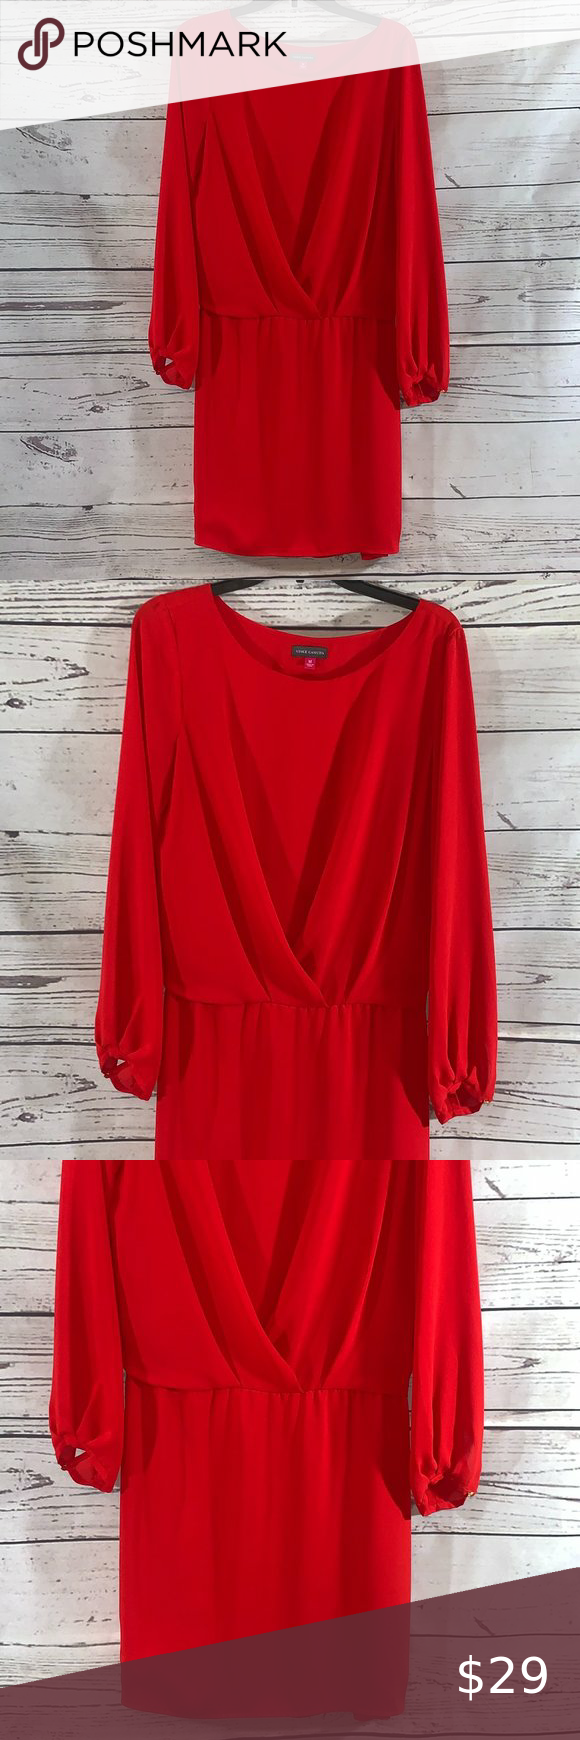 Nwot Vince Camuto Christmas Red Dress In 2020 Clothes Design Red Christmas Dress Red Dress [ 1740 x 580 Pixel ]